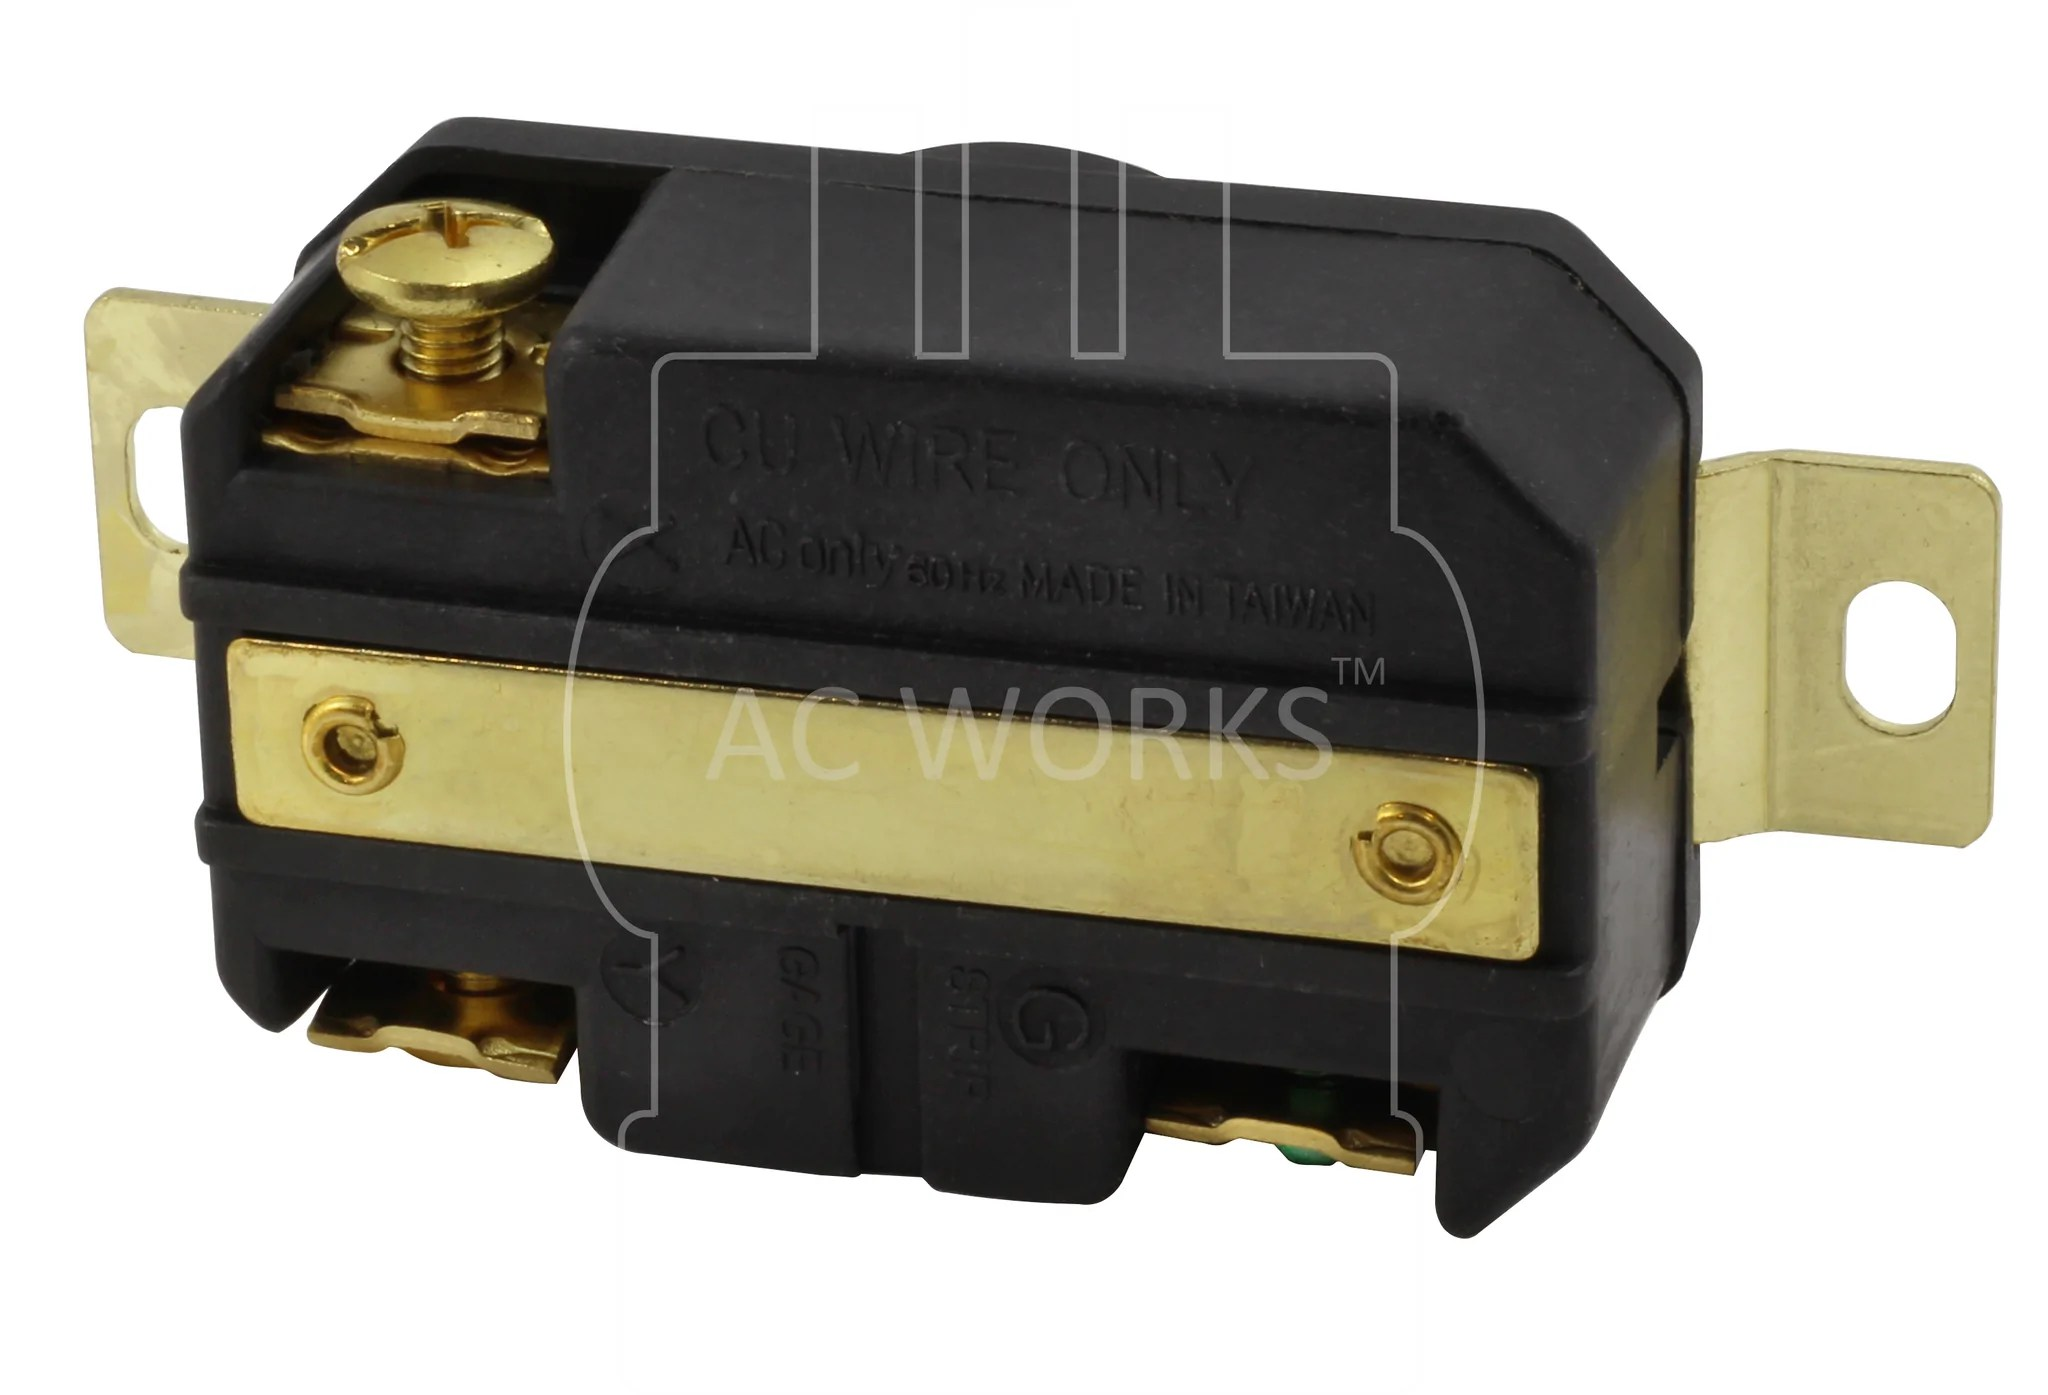 hight resolution of  fml620r ac works ac connectors flush mounting locking receptacle